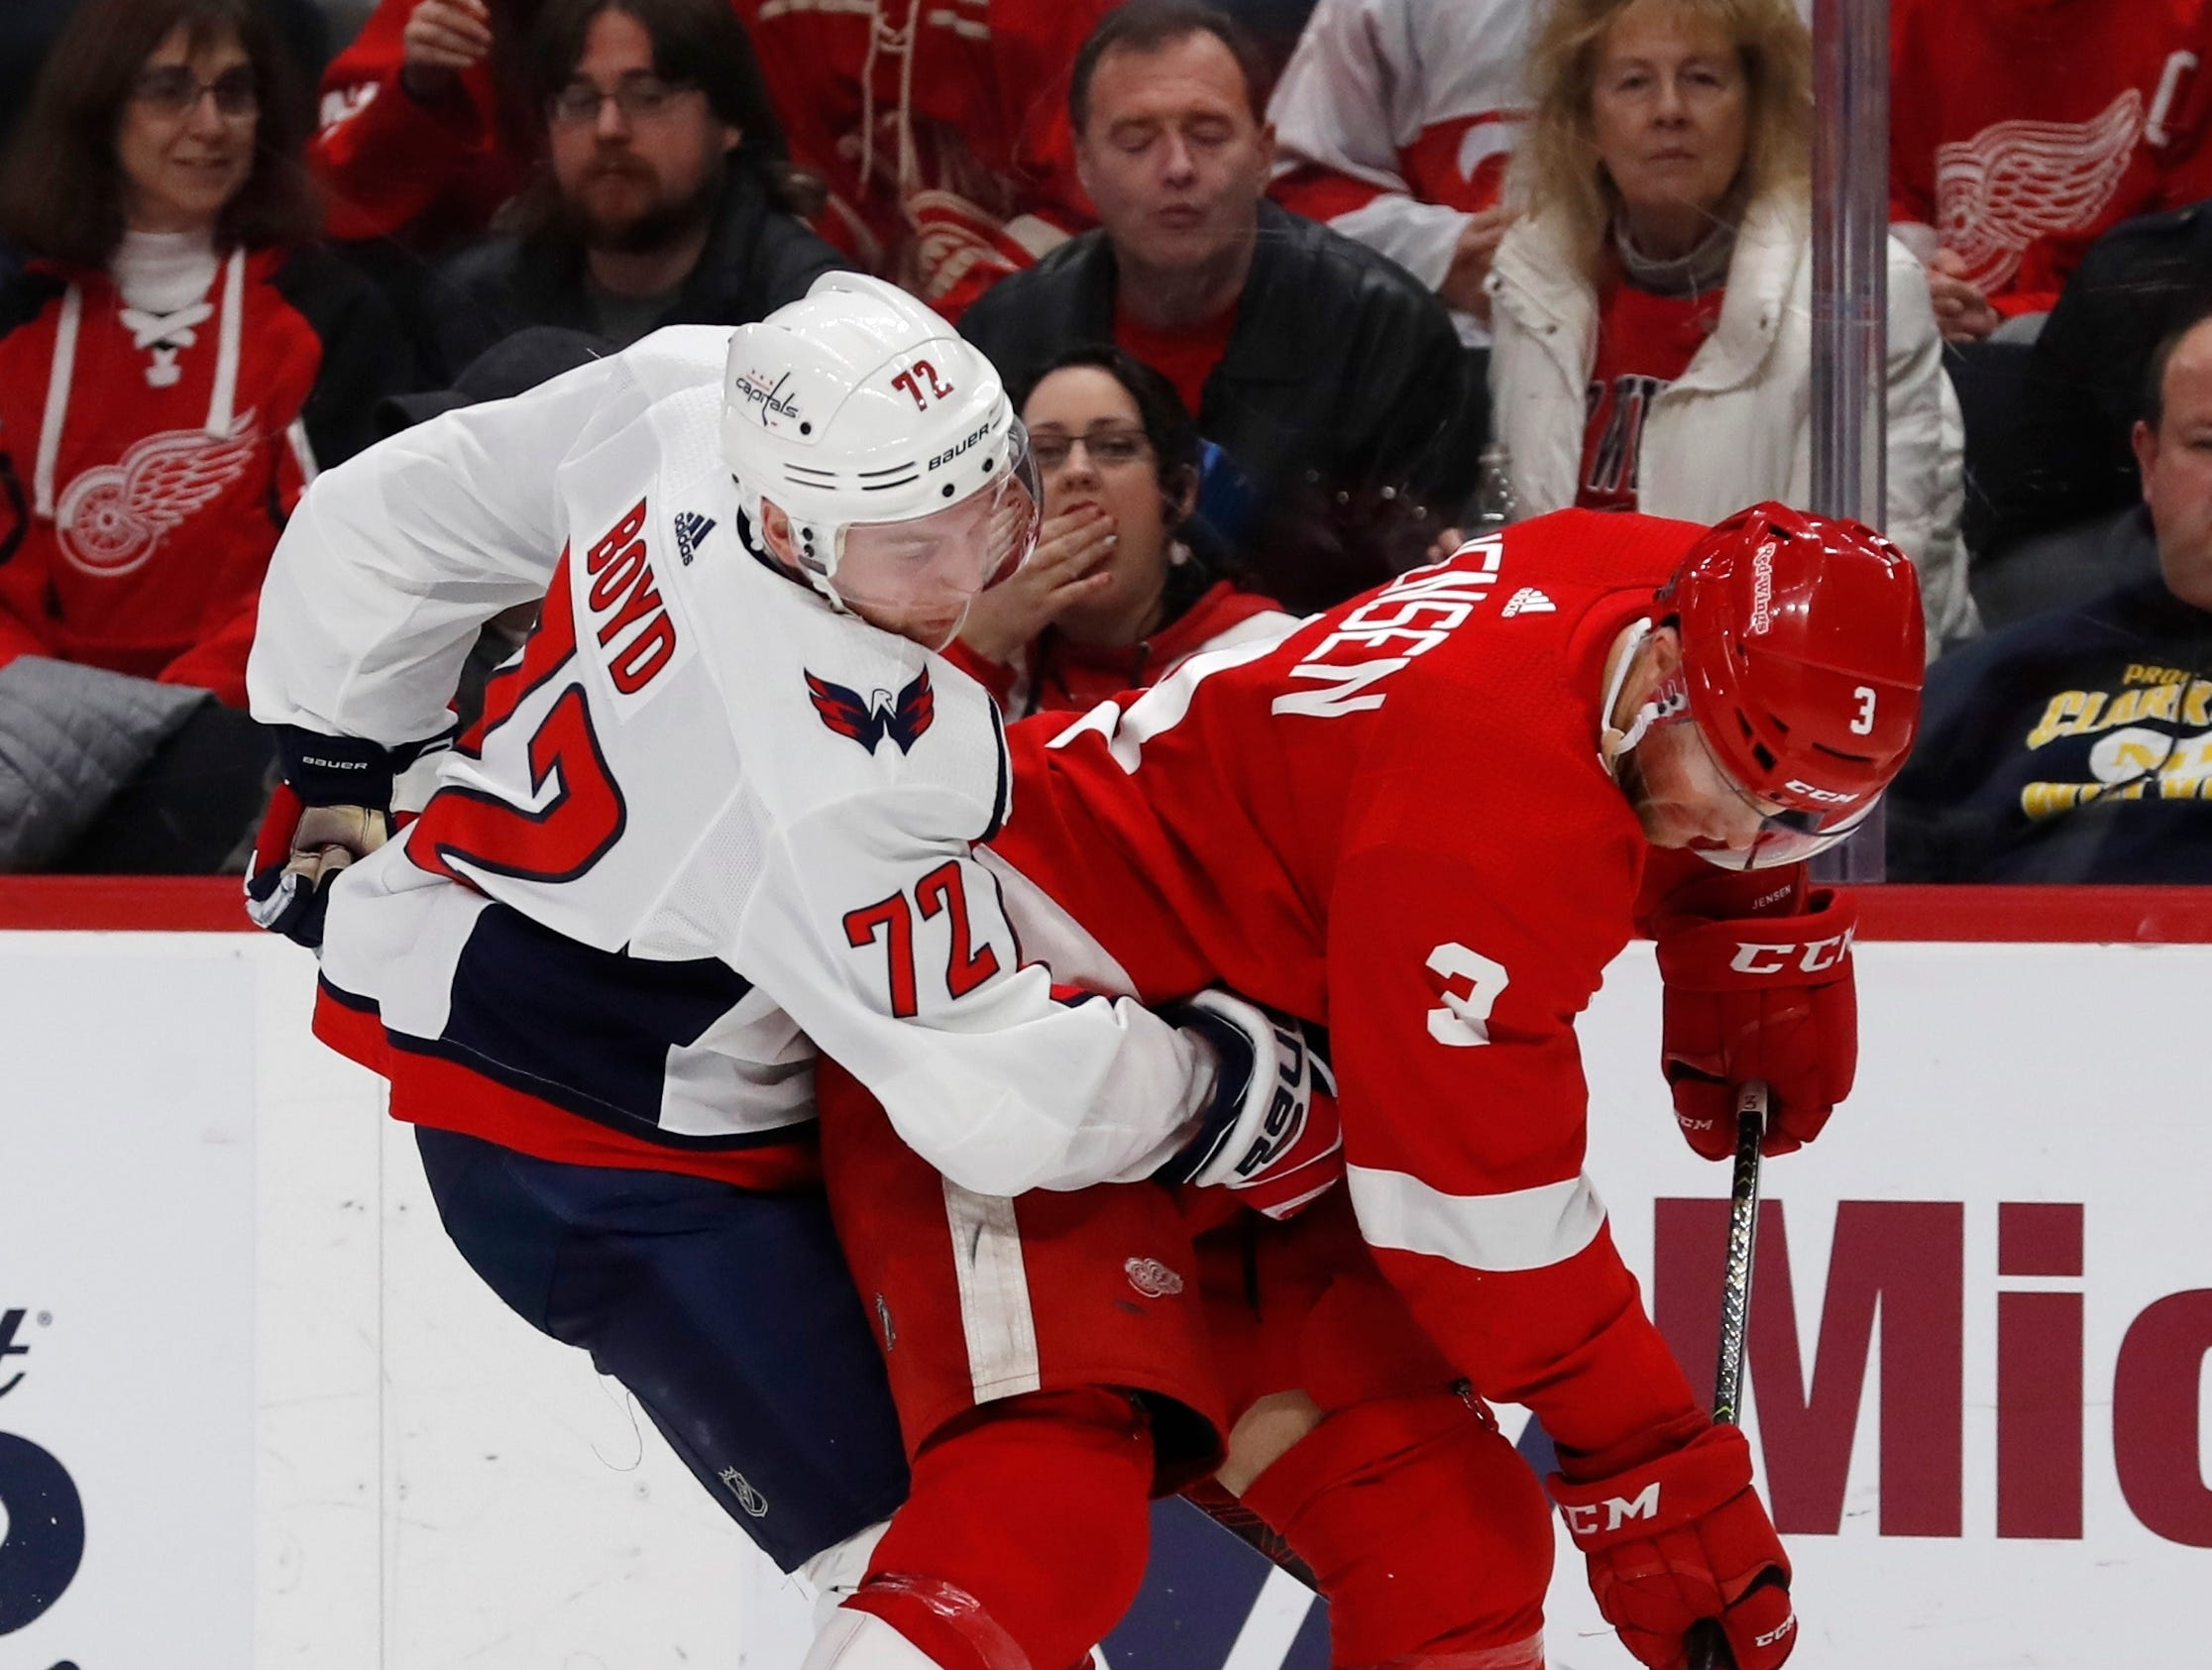 Washington Capitals center Travis Boyd (72) and Detroit Red Wings defenseman Nick Jensen (3) try controlling the puck during the second period.